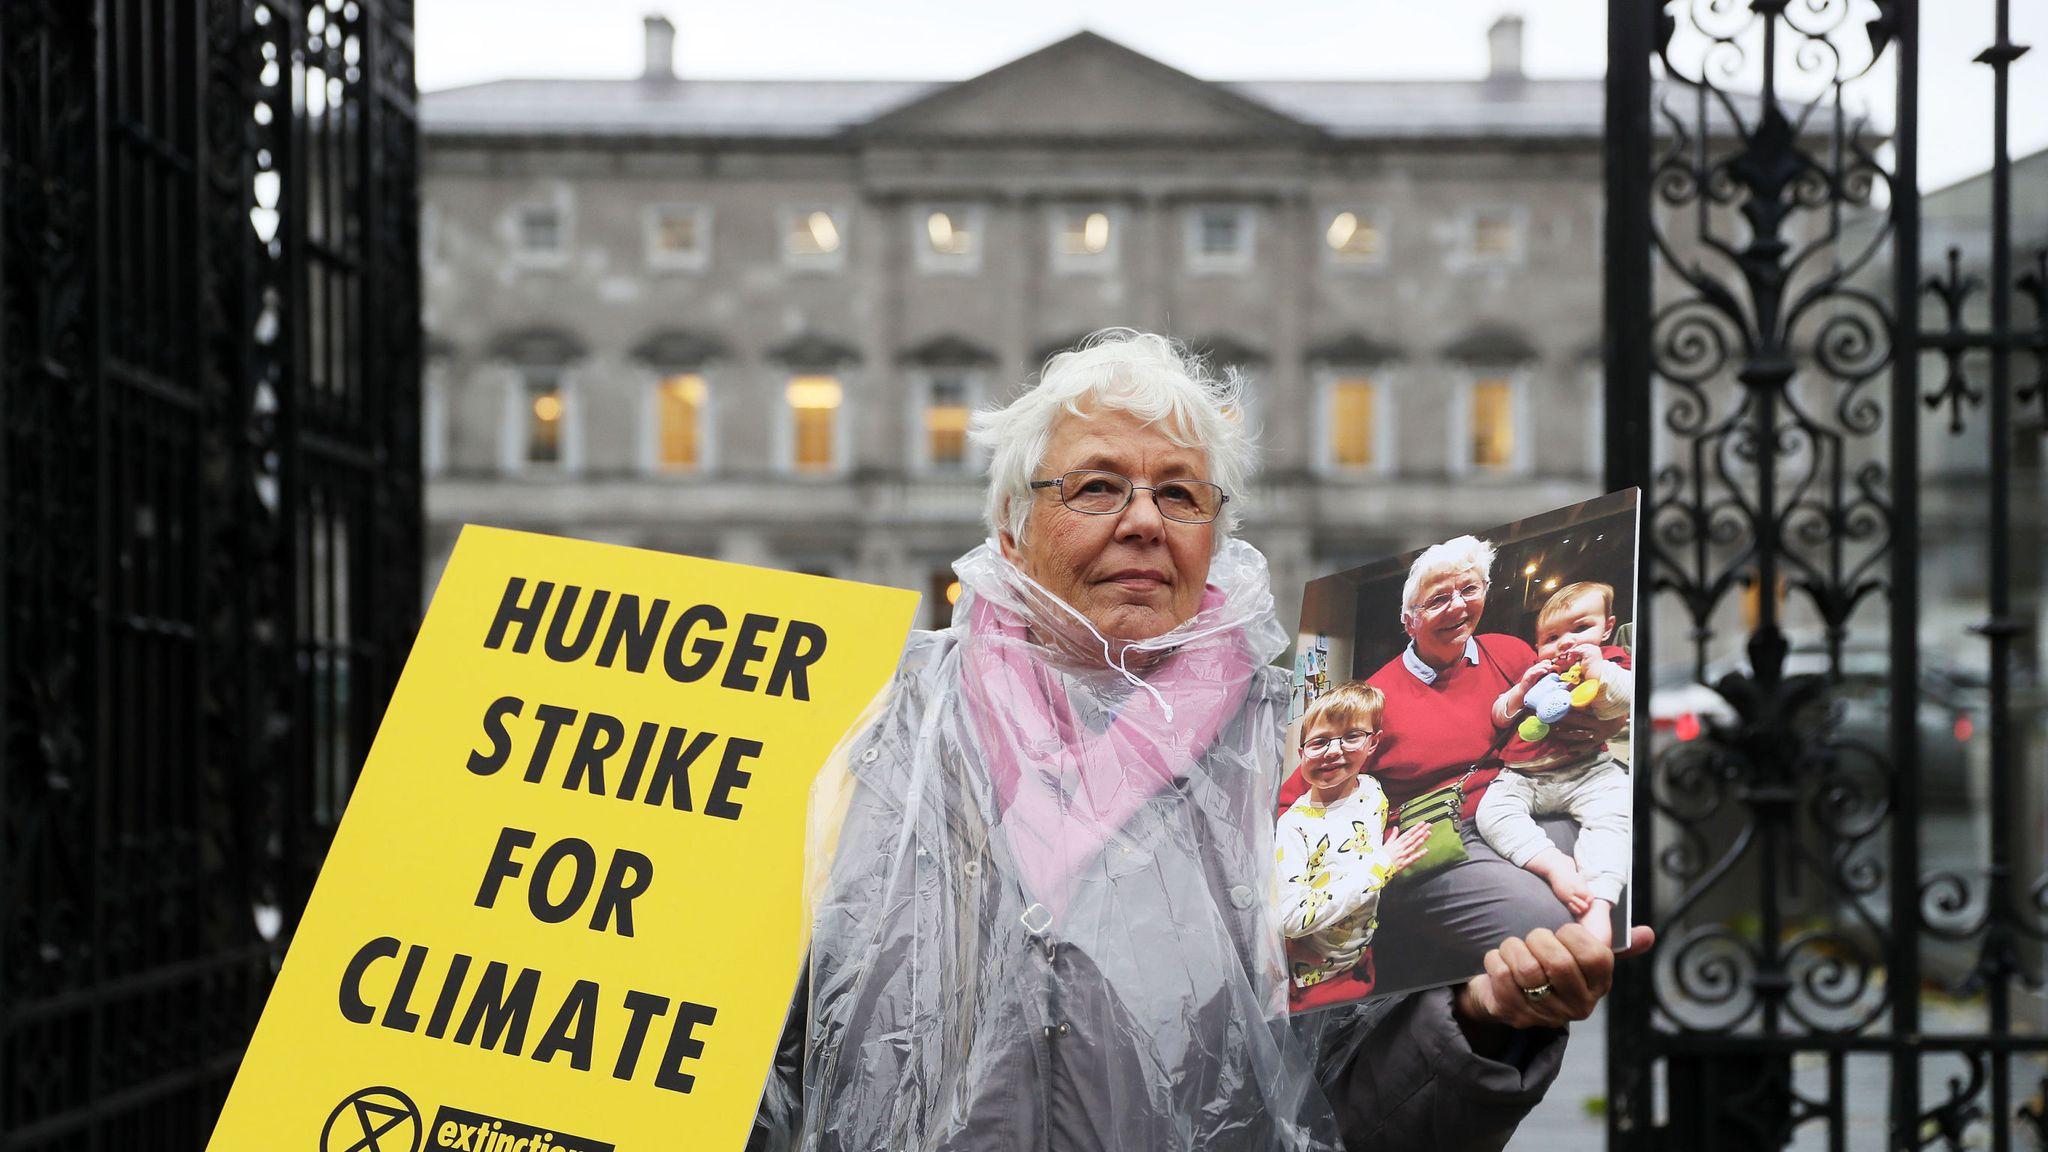 Patricia Devlin: Grandmother goes on hunger strike over climate change